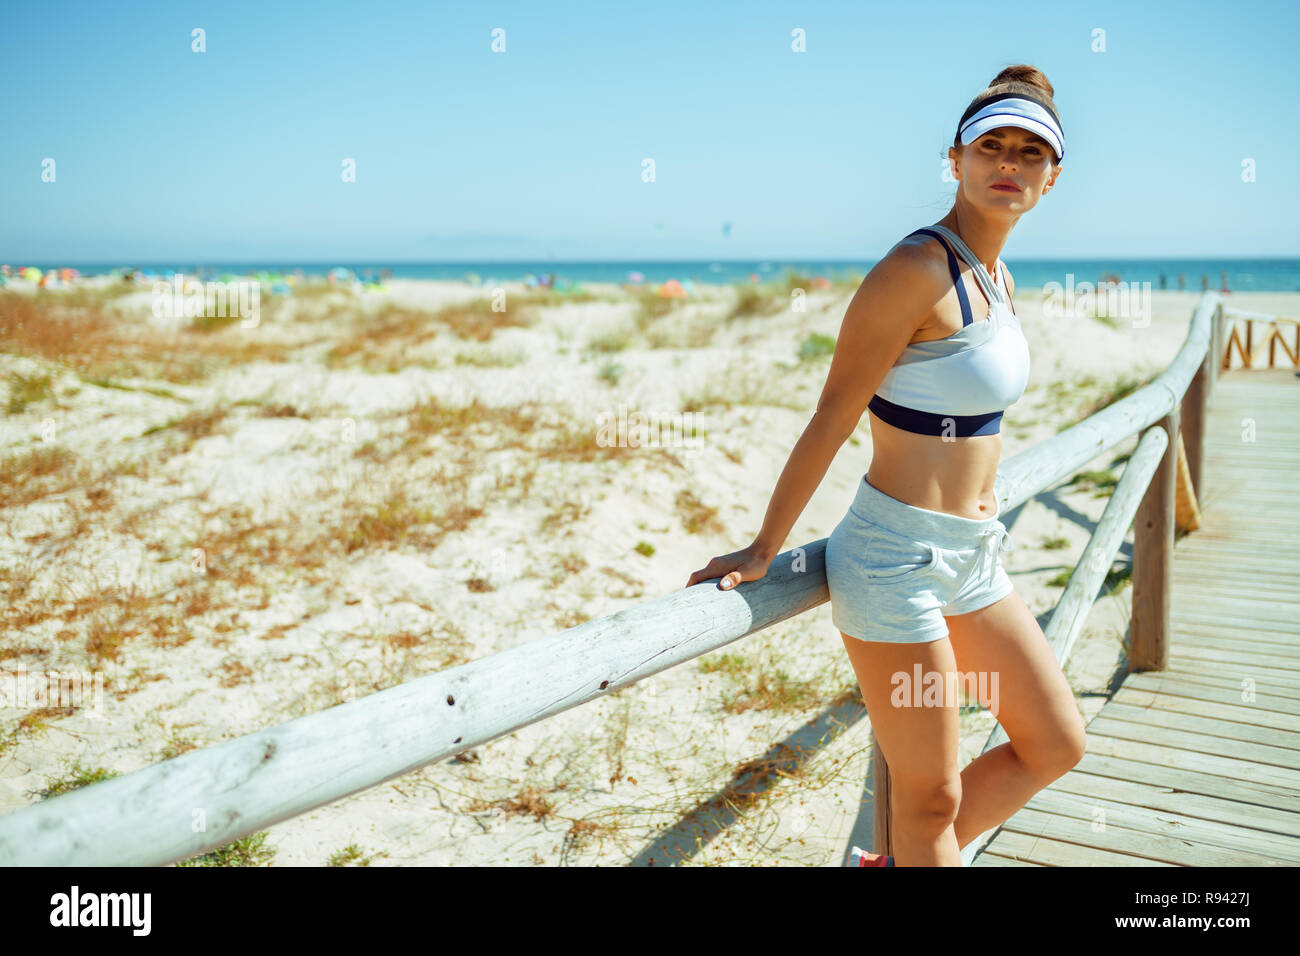 fit woman jogger in fitness clothes on the beach looking